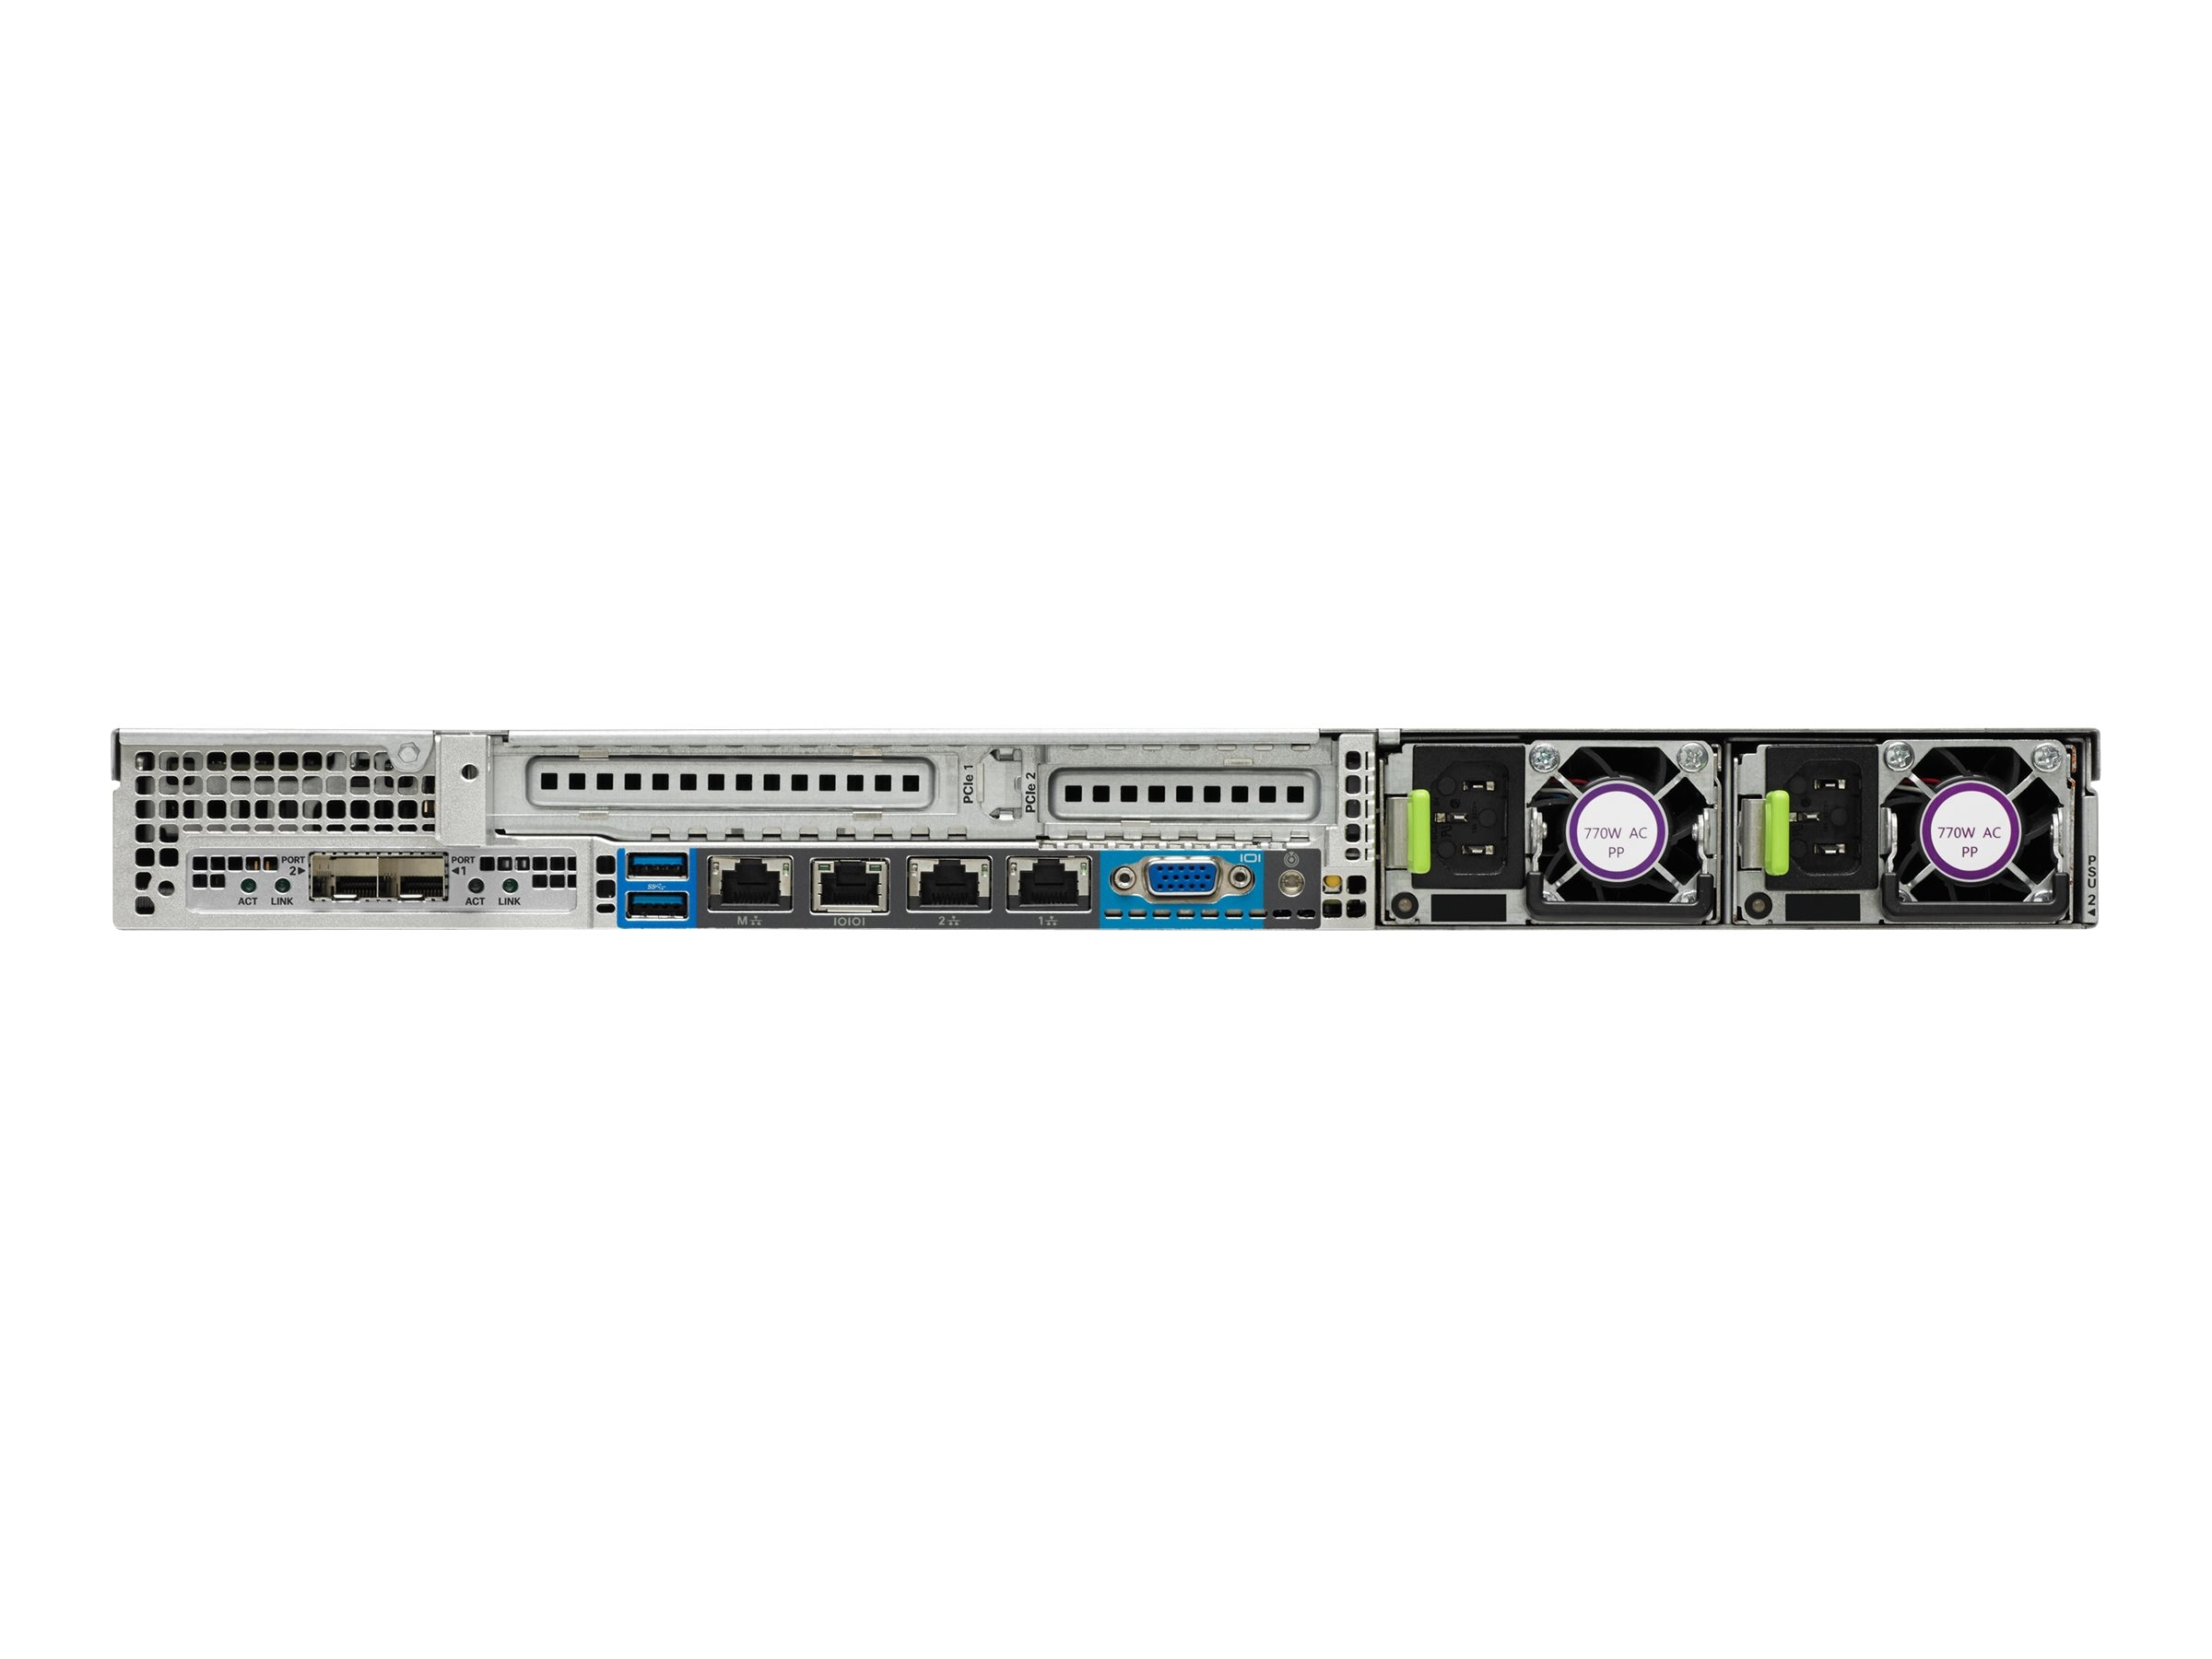 Cisco UCS SP8 C220 M4 Entry Xeon E5-2609 v3 64GB, UCS-EZ8-C220M4-E